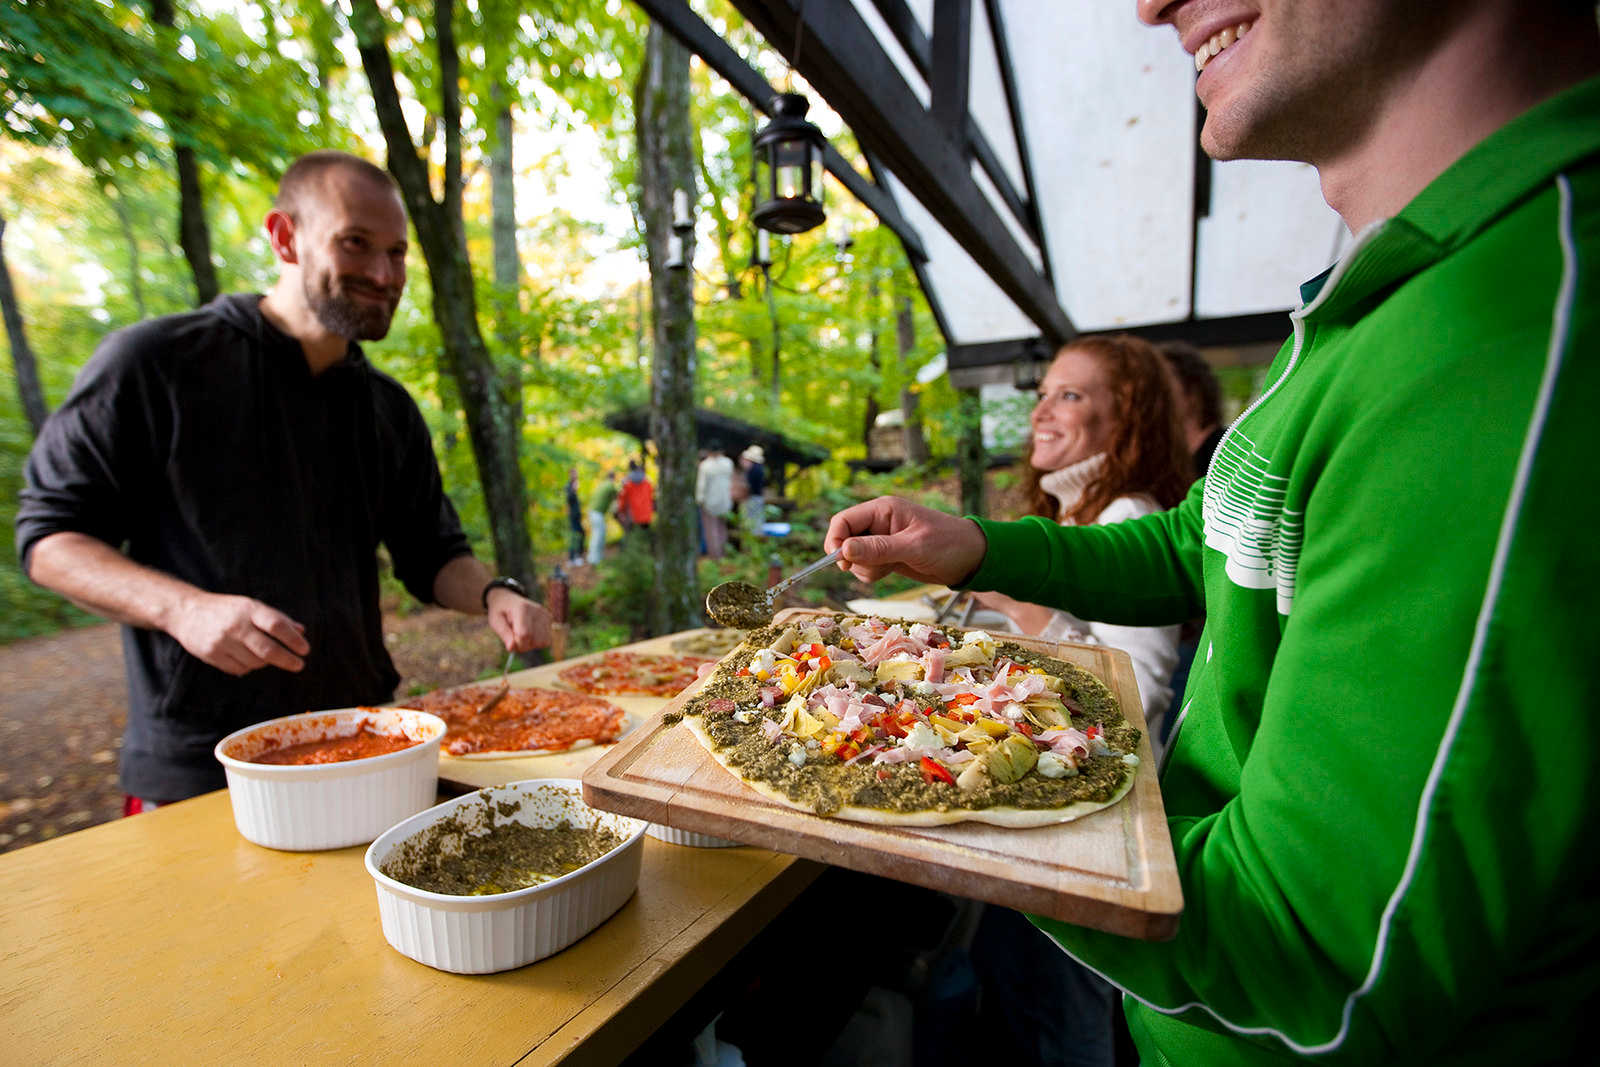 Serving gourmet pizza in the forest with Rocky the pizza oven